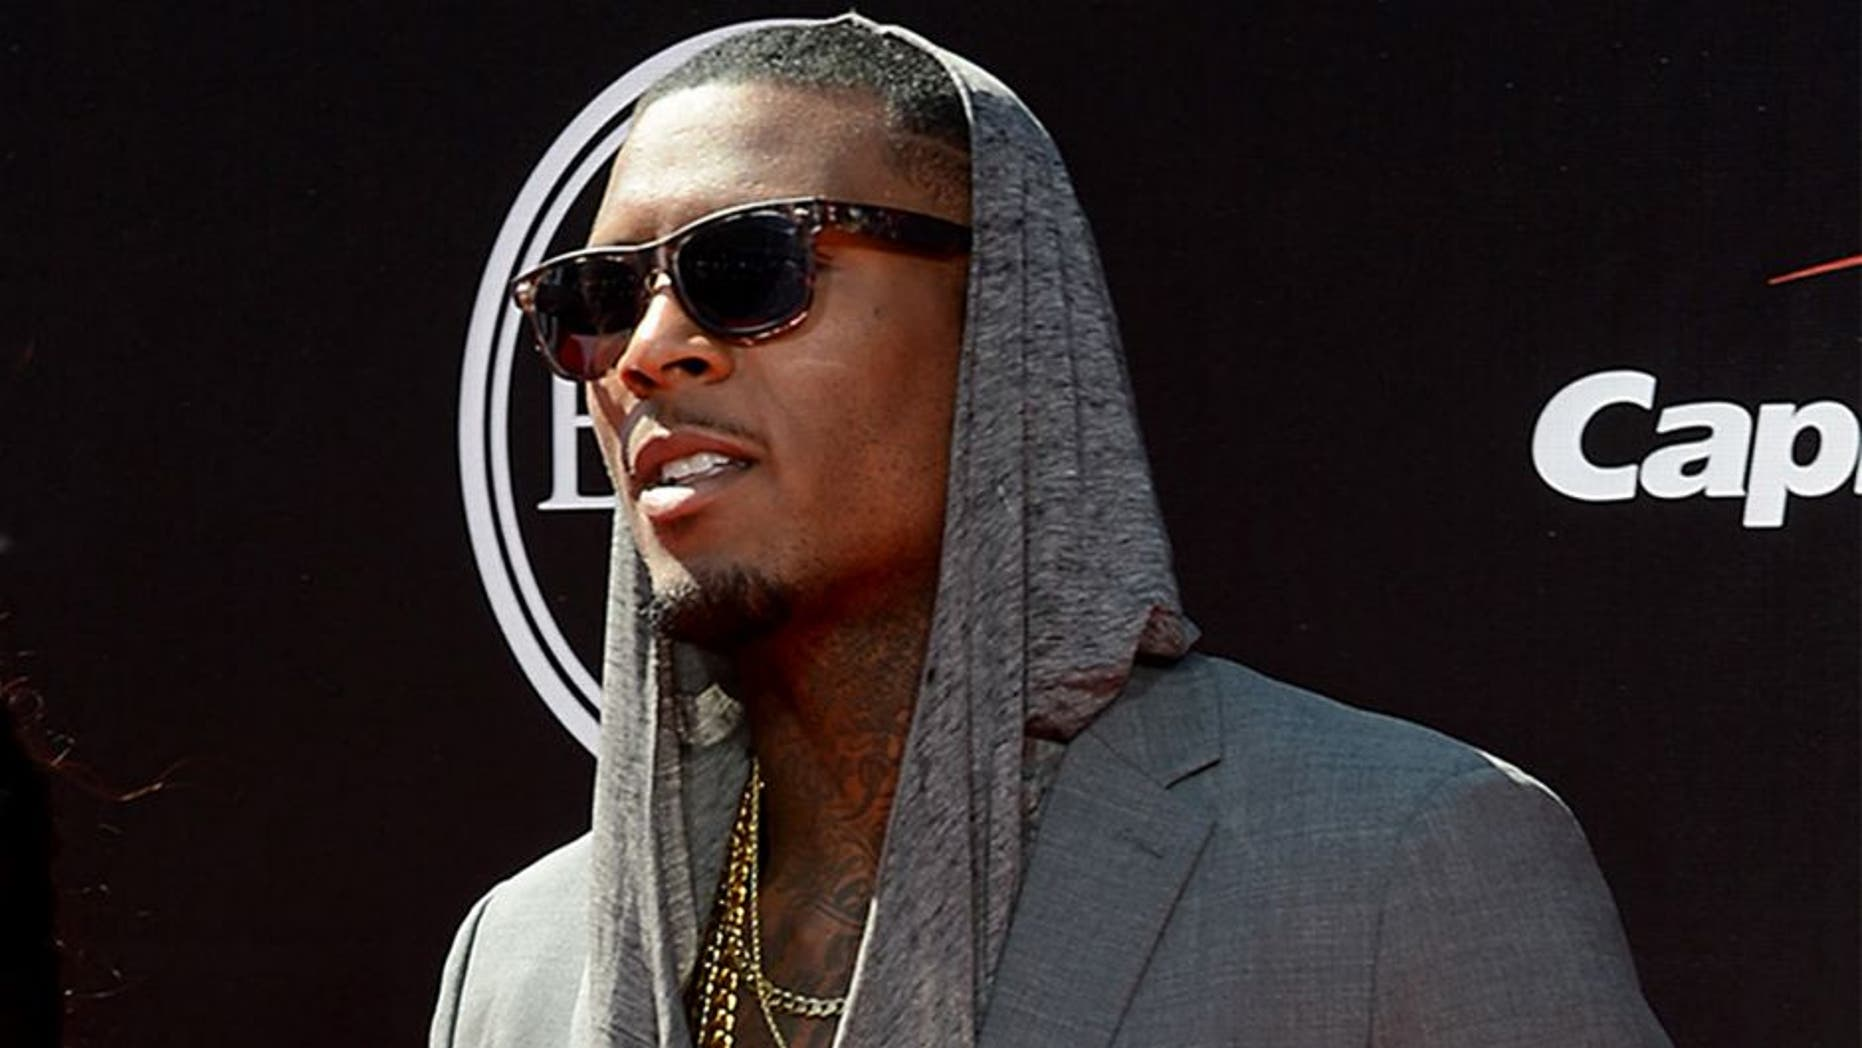 Jul 16, 2014; Los Angeles, CA, USA; San Francisco 49ers wide receiver Stevie Johnson (right) arrives at the 2014 ESPY Award show at Nokia Theatre. Mandatory Credit: Jayne Kamin-Oncea-USA TODAY Sports